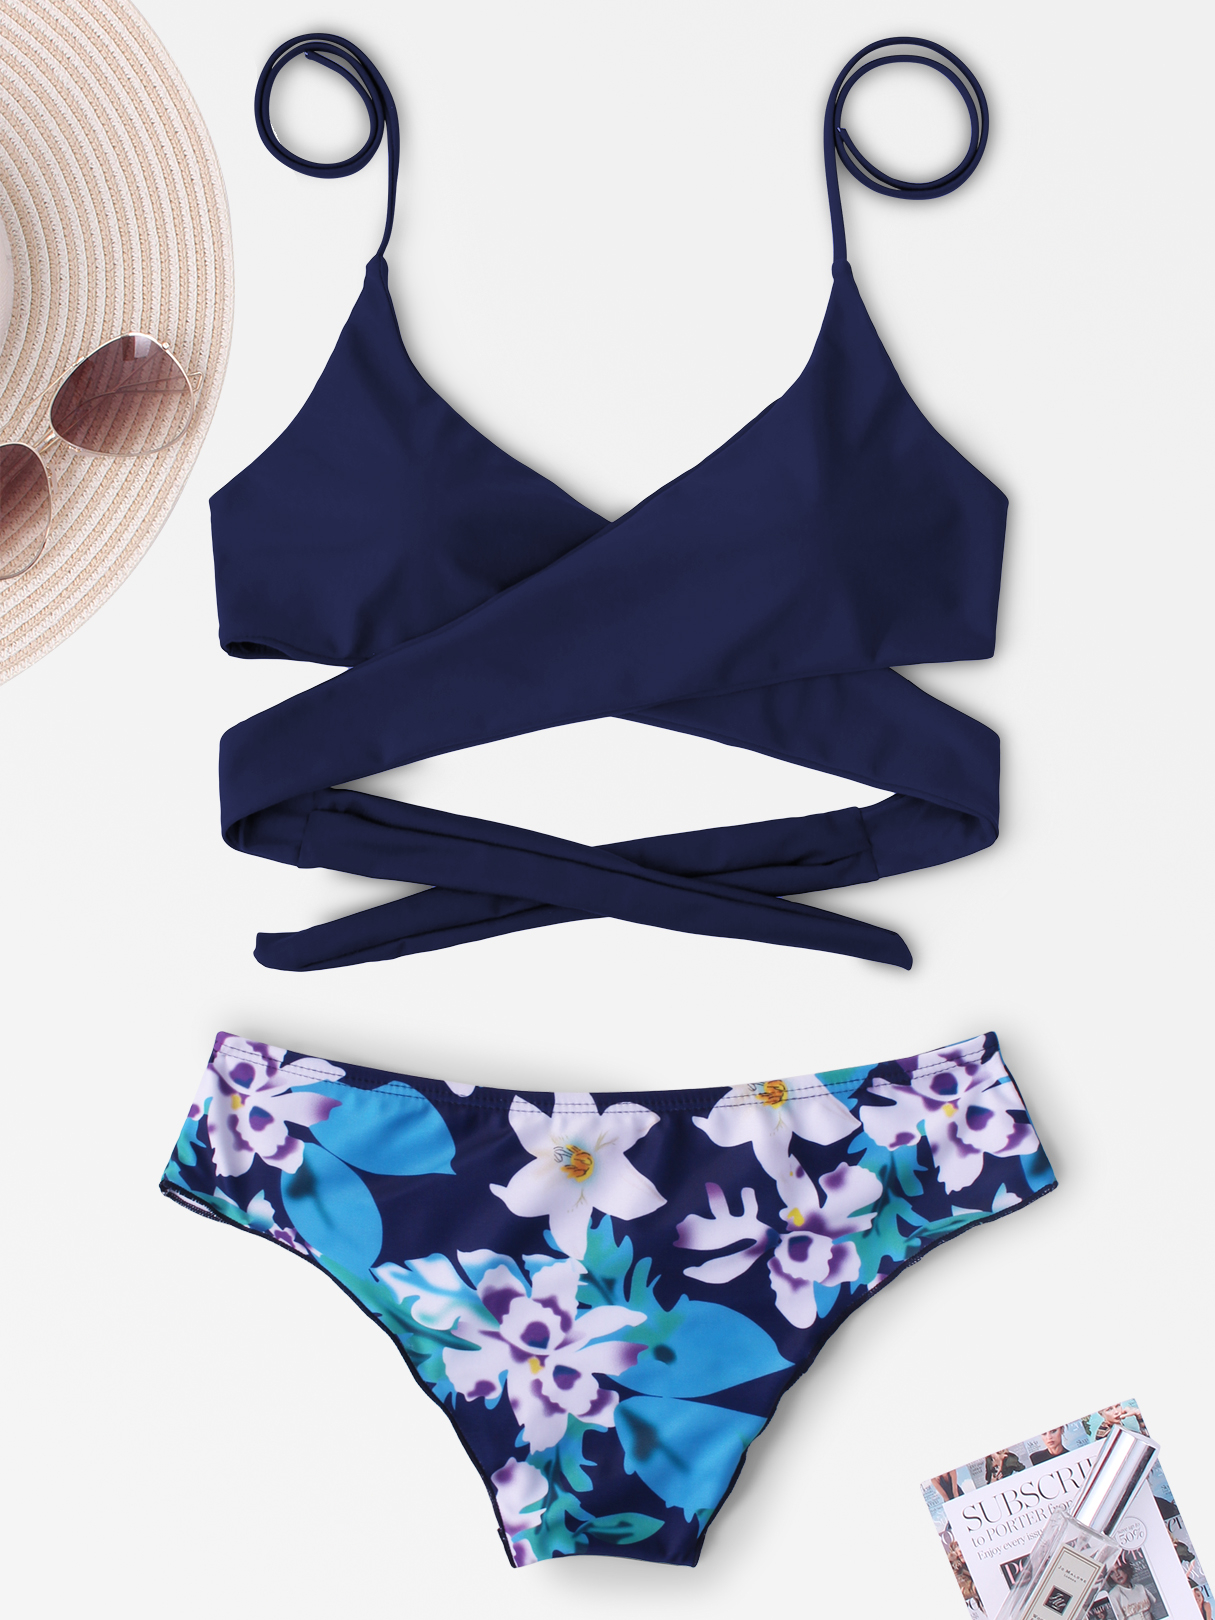 Navy & Floral Print V-neck Halter Tie-up Design Bikini